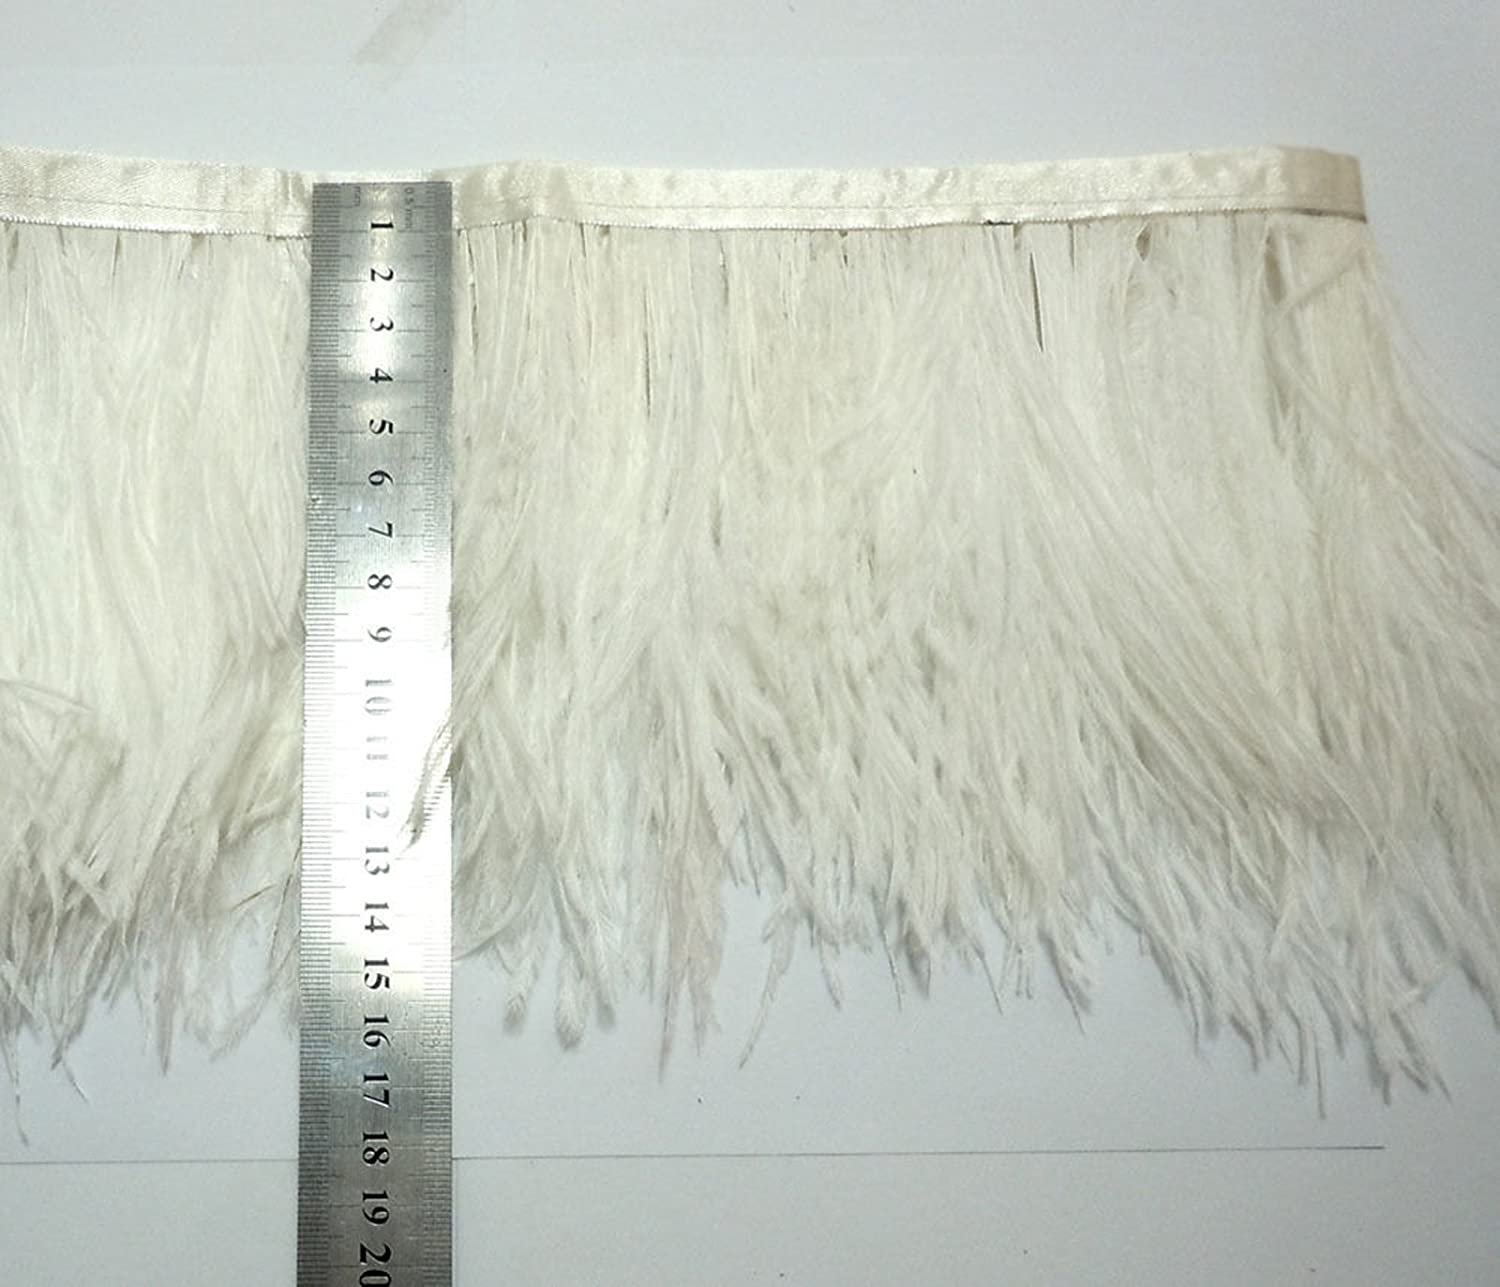 Ostrich Feathers Trims Fringe with Satin Ribbon Tape for Dress Sewing Crafts Costumes Decoration Pack of 2 Yards Pink